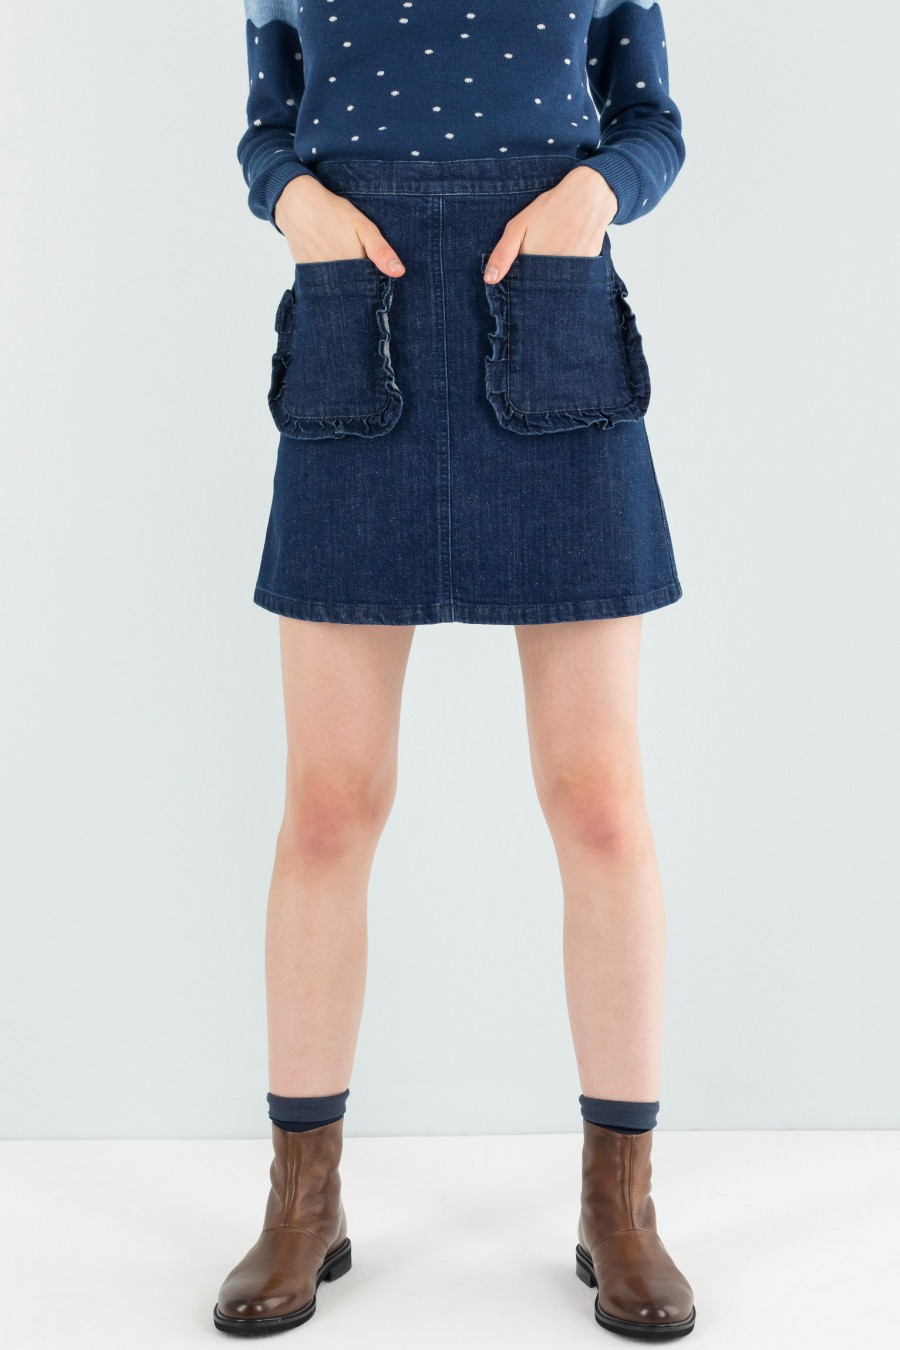 Autumnal denim skirt with pockets